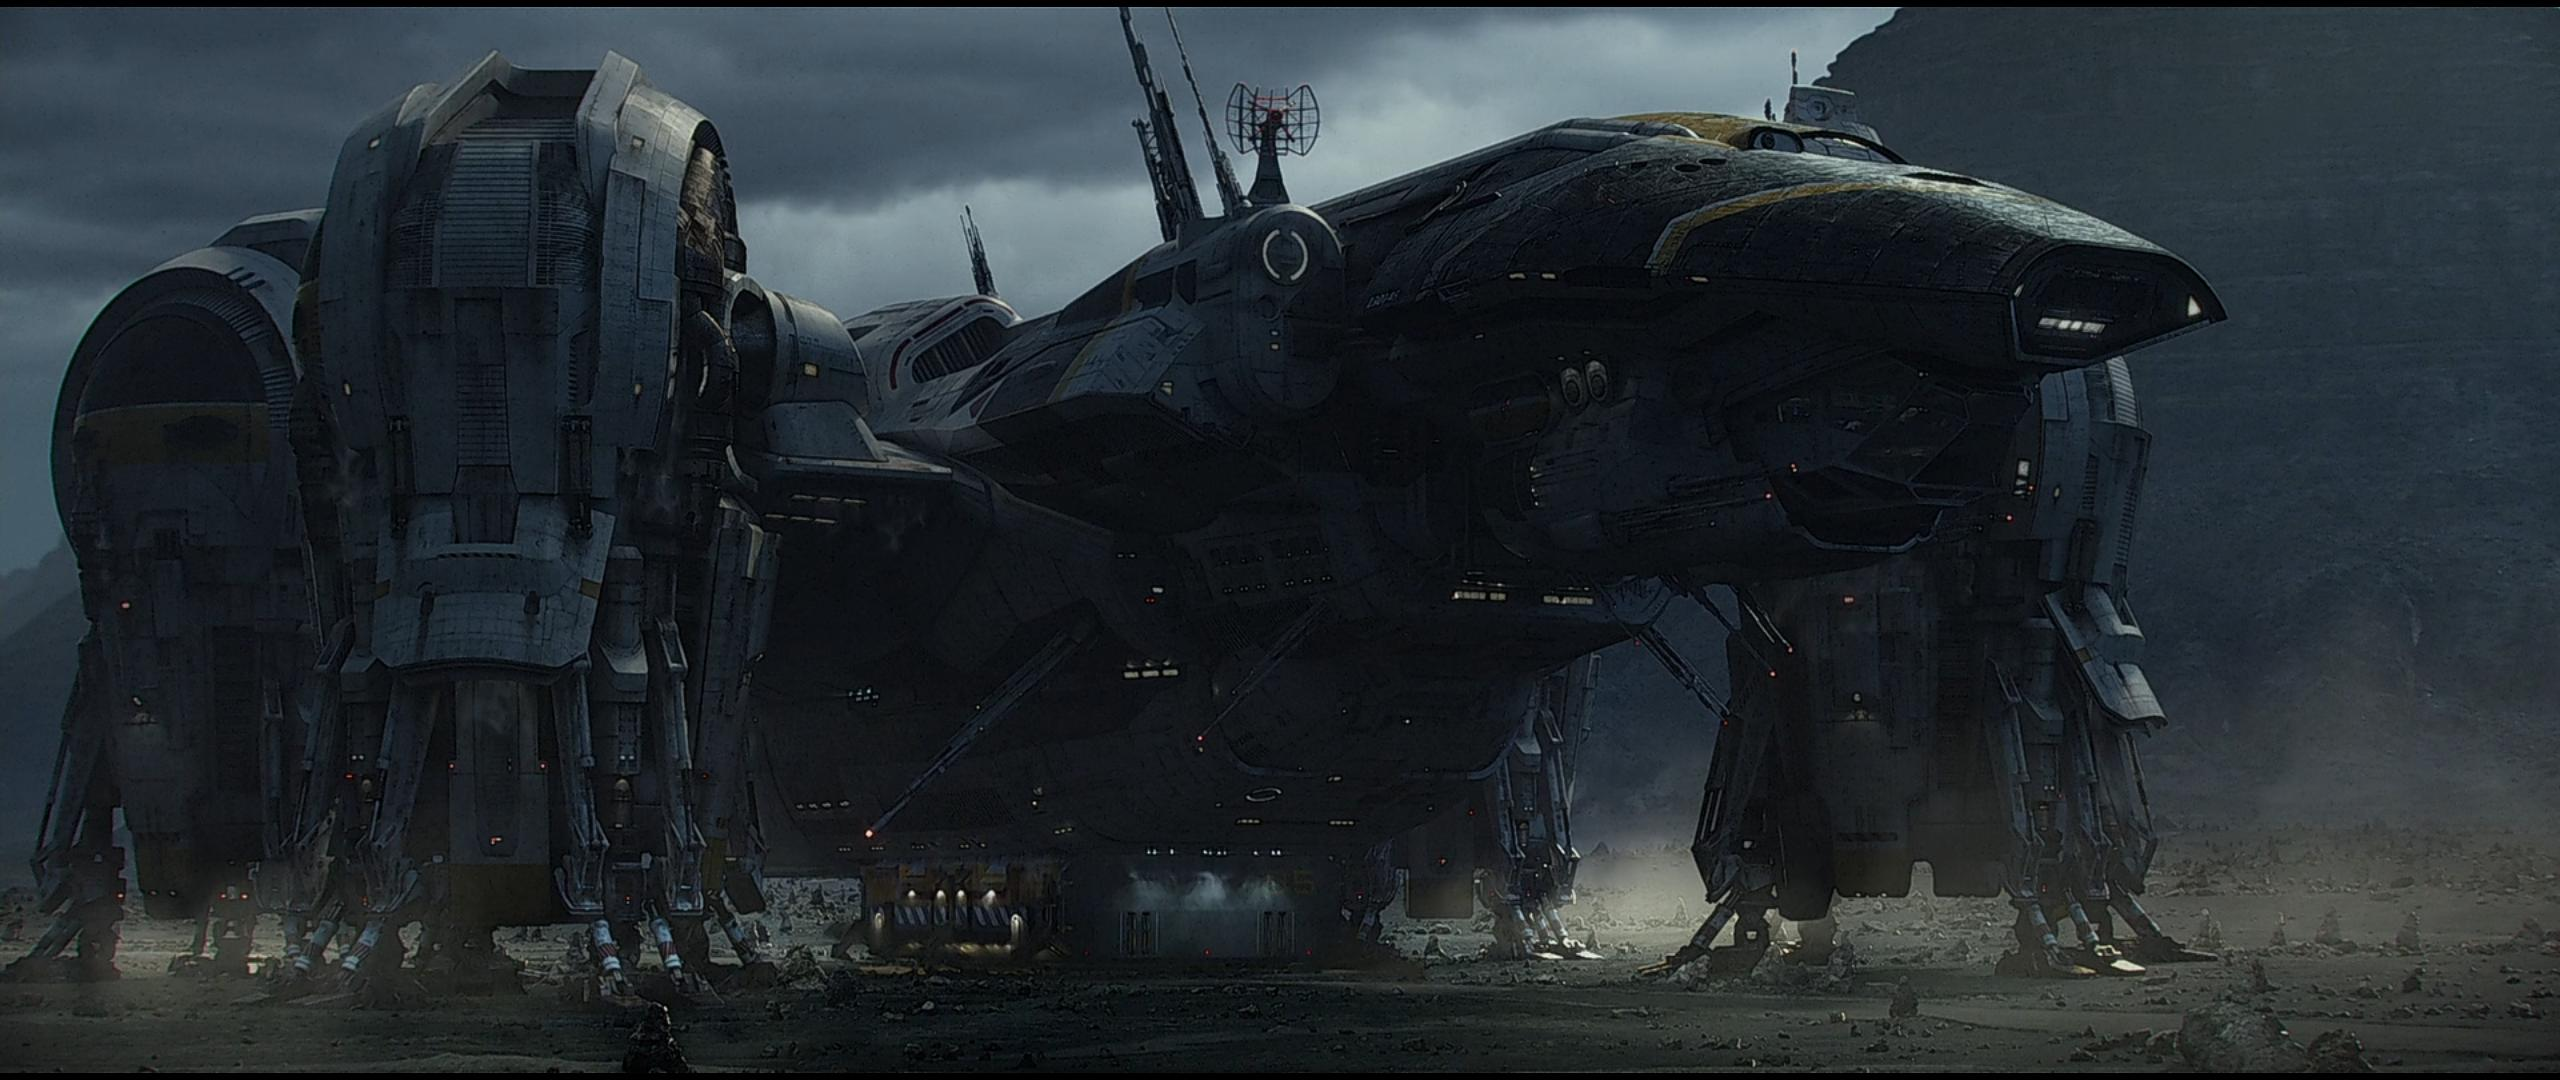 The Best of the Internets Wallpaper Prometheus the Ship [2560x1080] 2560x1080